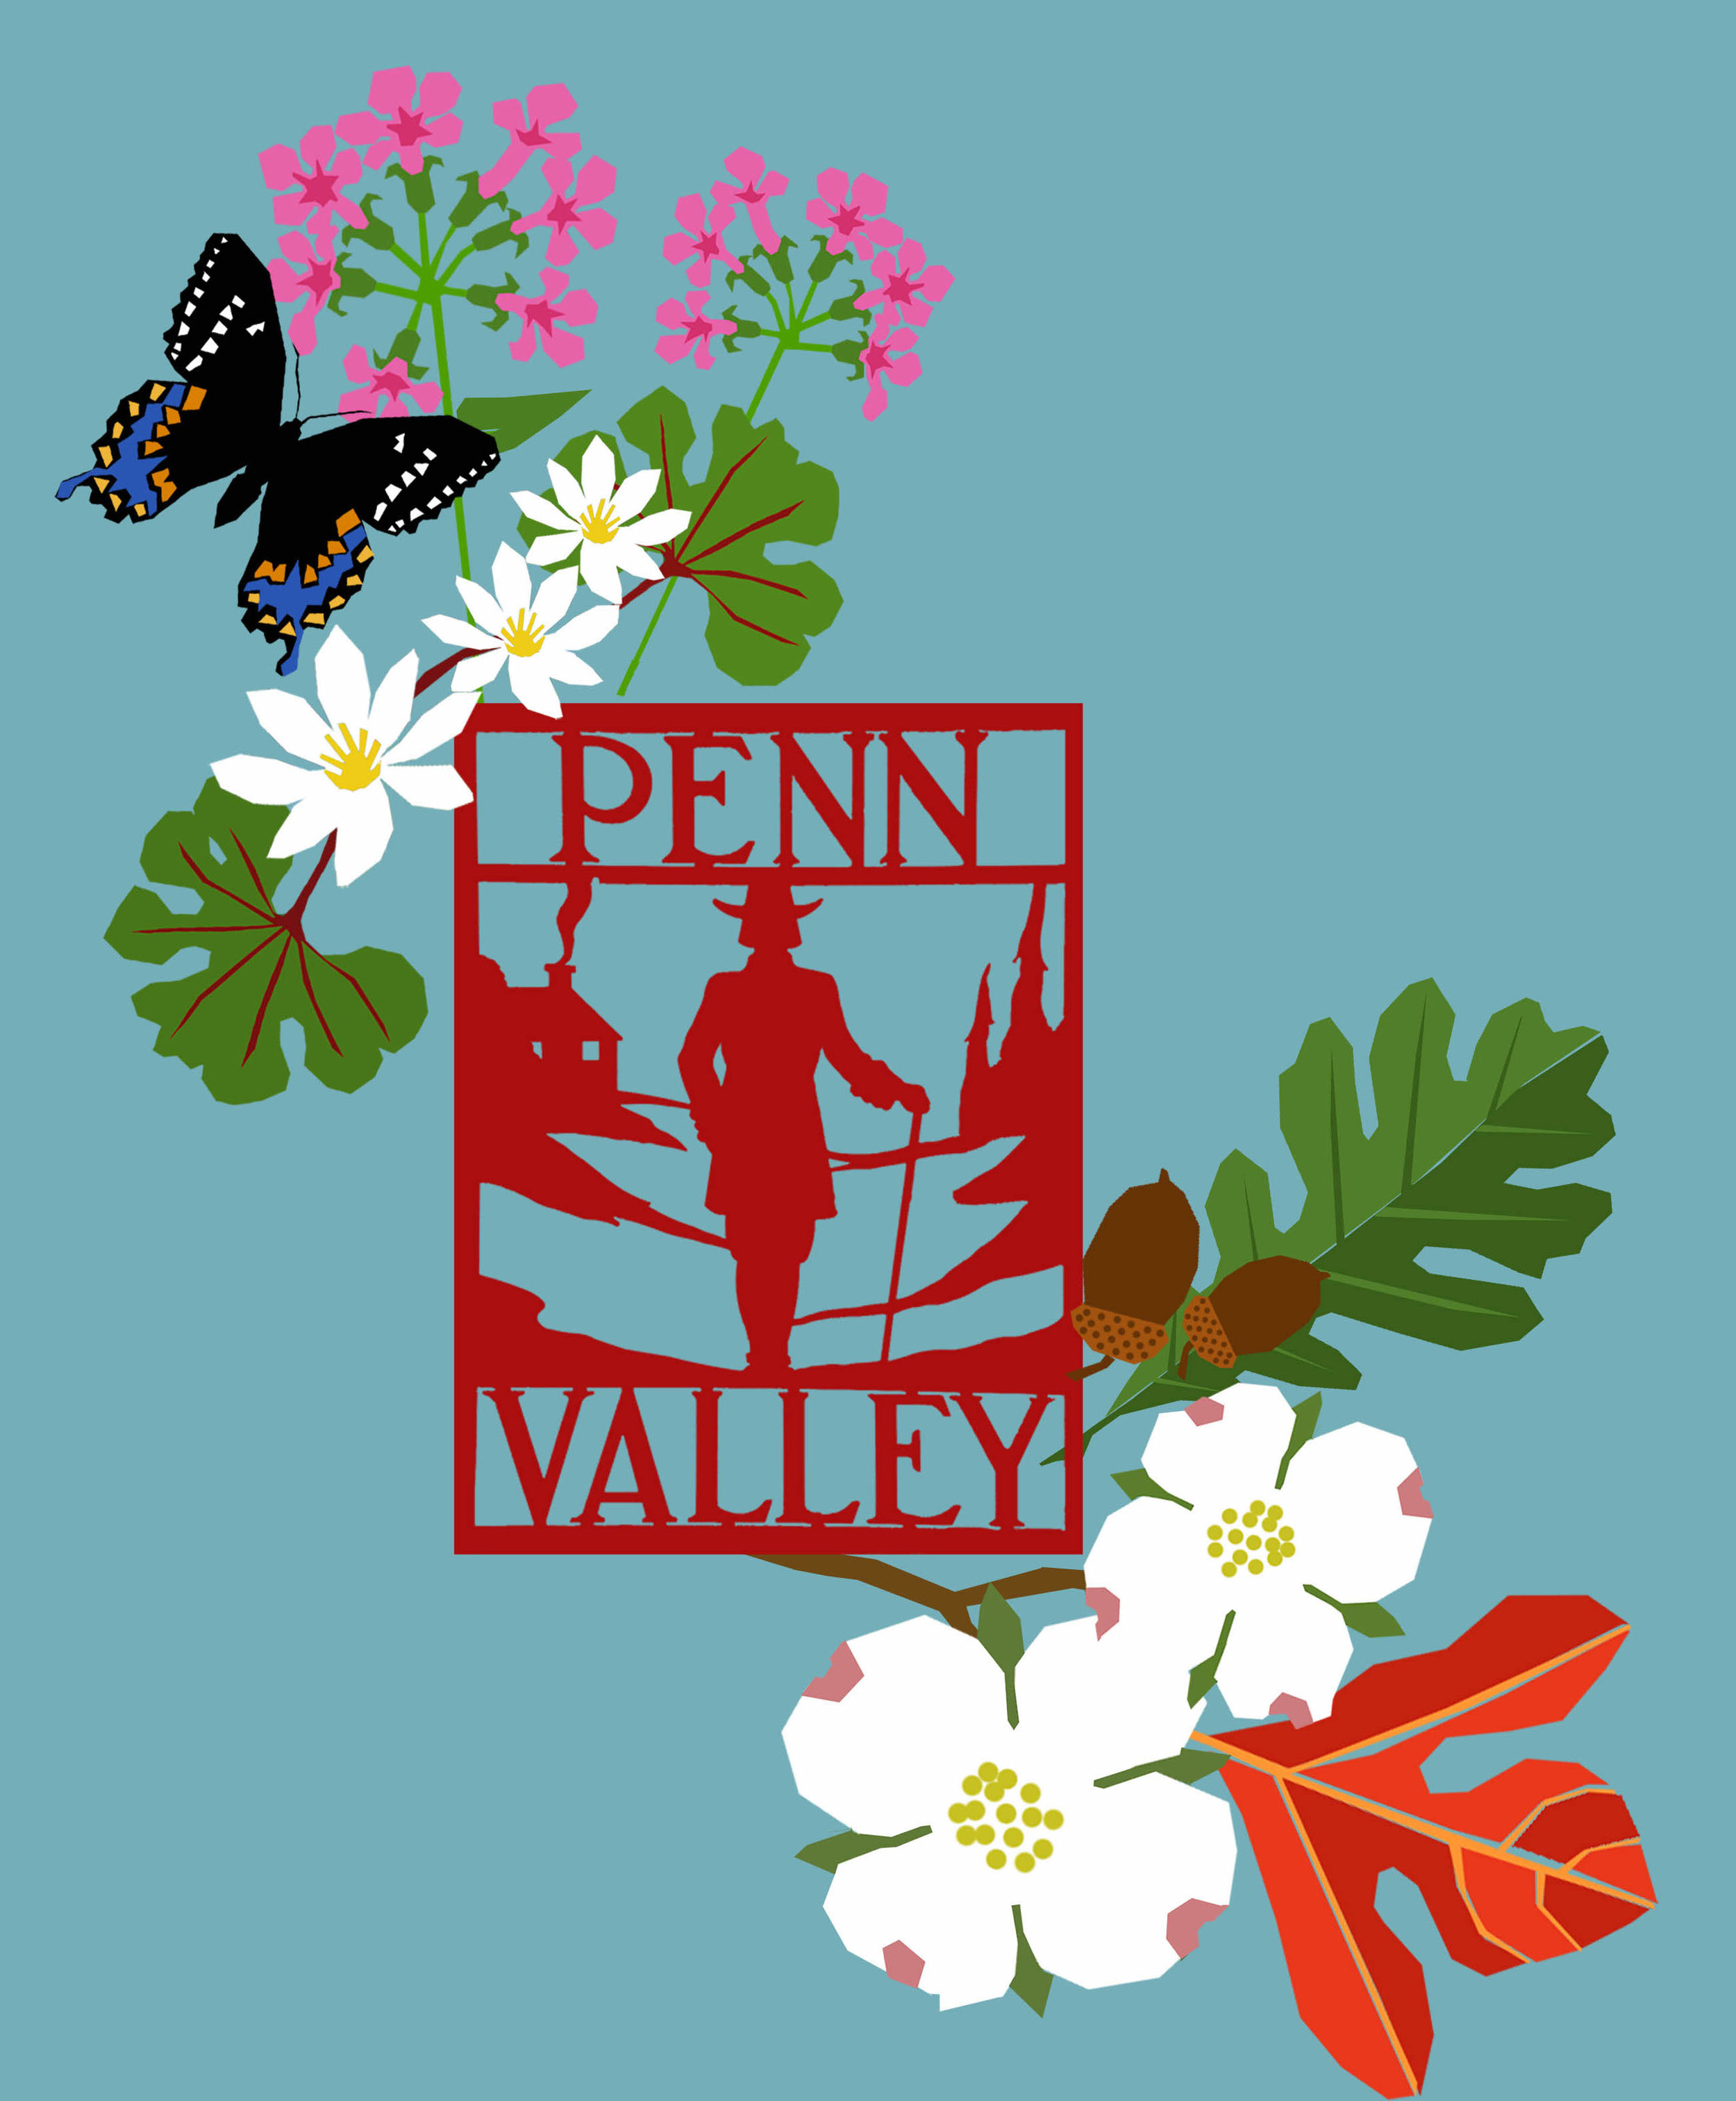 Mini-graphic designed by local mural artist, Eurhi Jones. This appeared on specially designed t-shirts for purchase to help support the mural project. In addition to our historic neighborhood sign, a spicebush swallowtail butterfly accompanies locally native plants and trees including, phlox, blood root, oak, dogwood and sassafras.